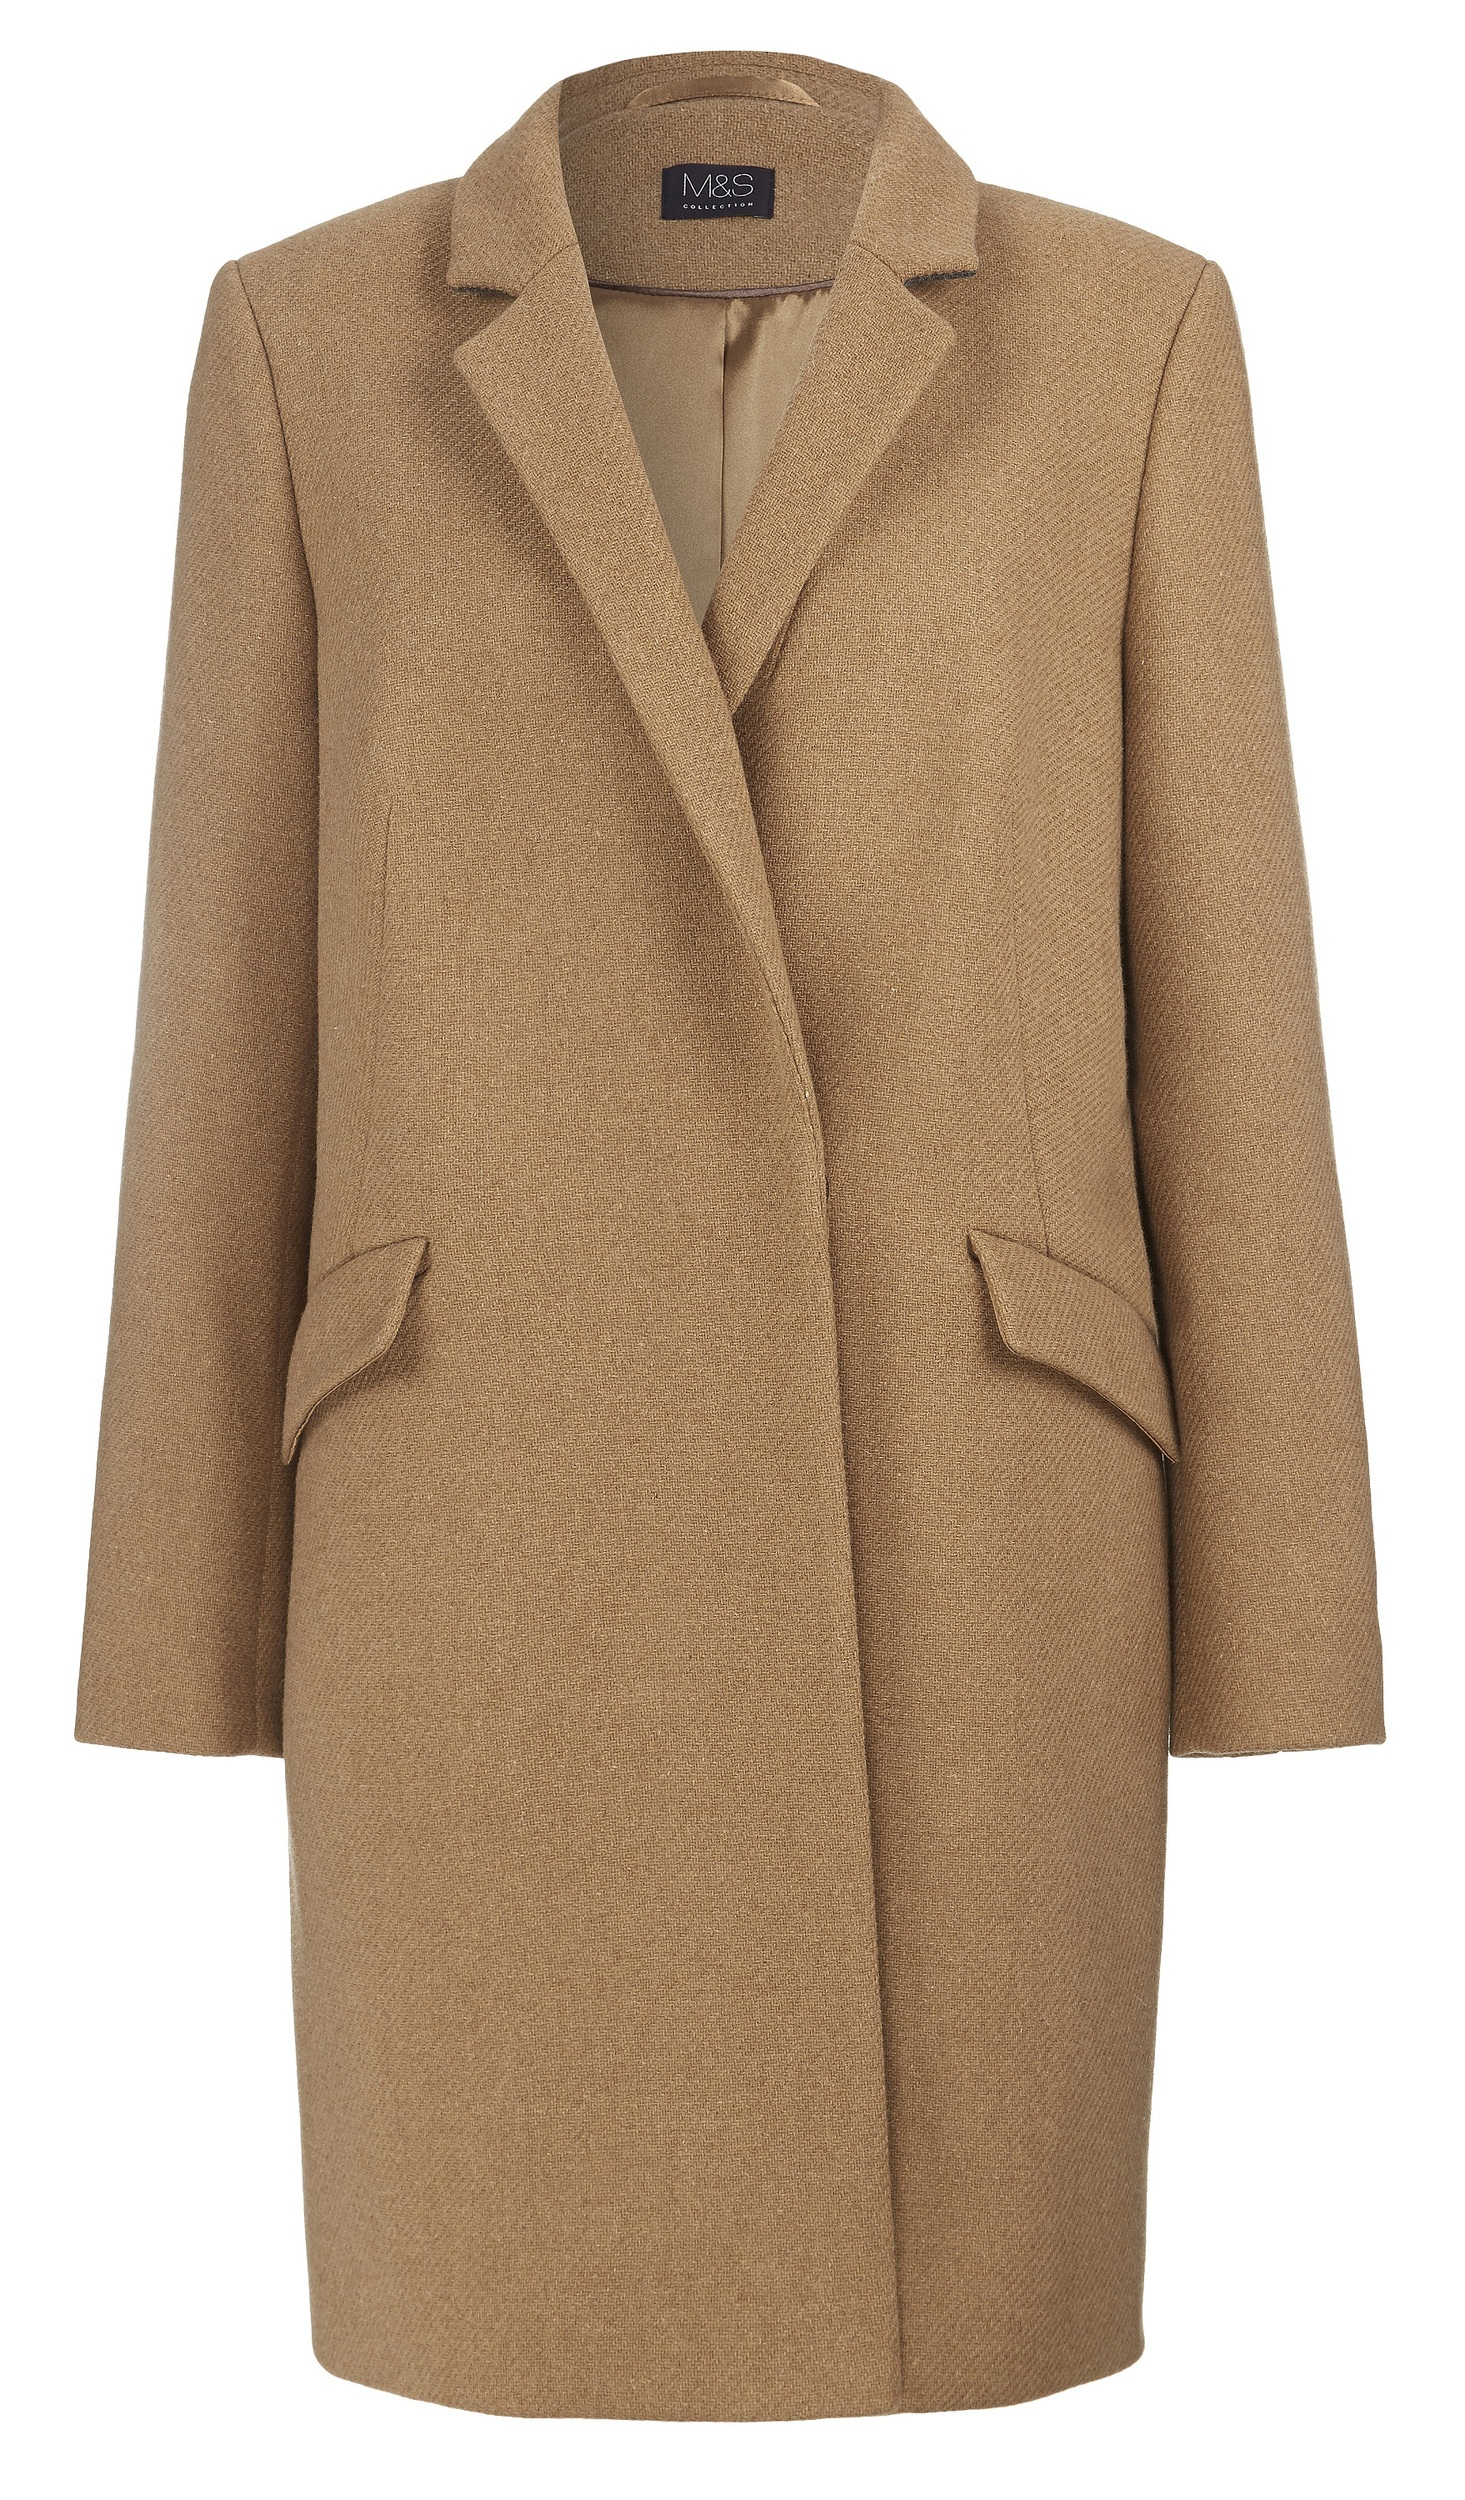 Marks and spencer coats women